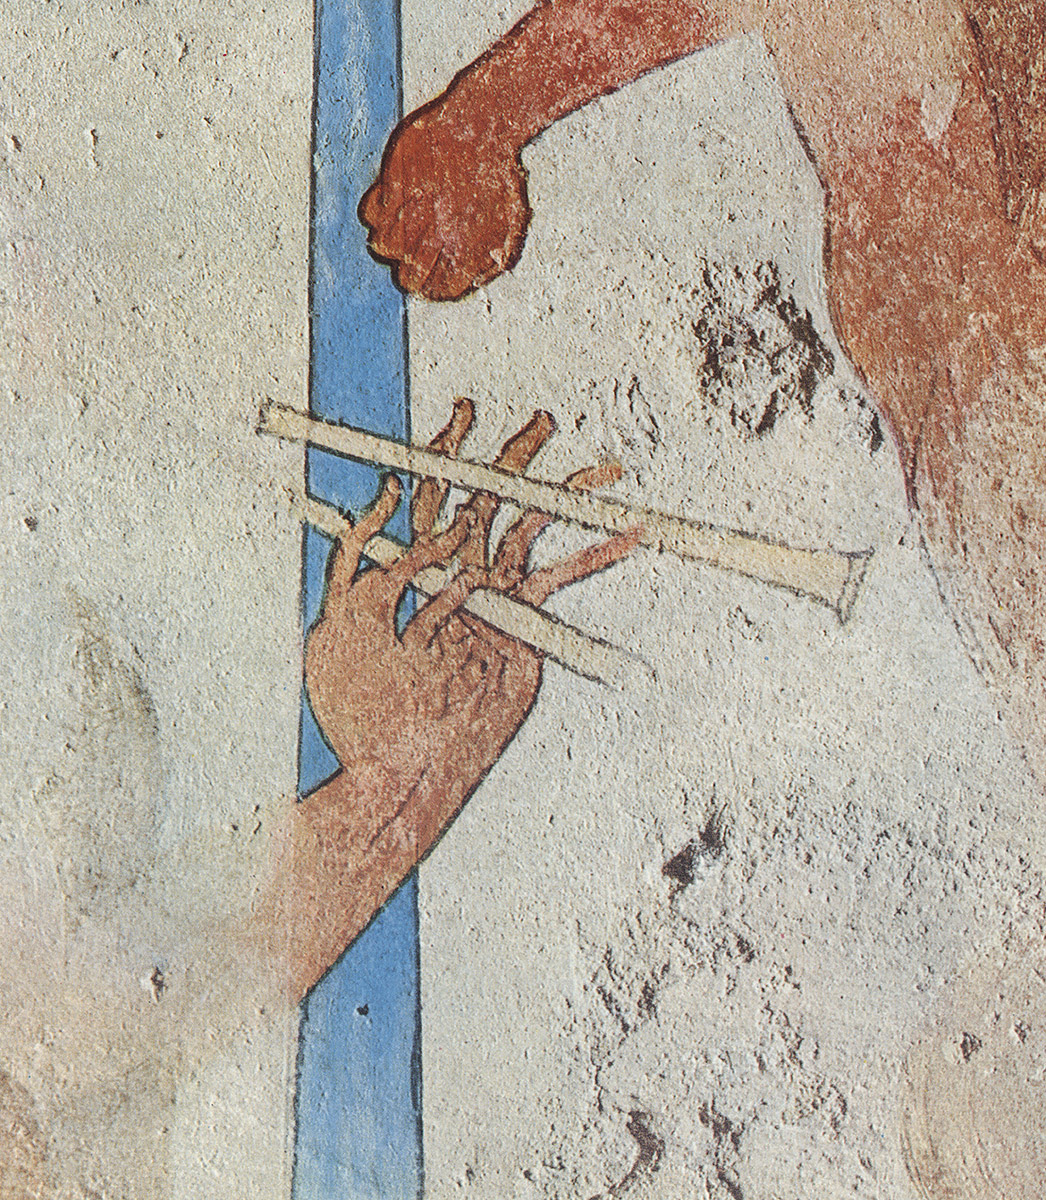 Hands of flutist. Detail. 5th century BCE. Tarquinia, Tomb of the Funerary Bed